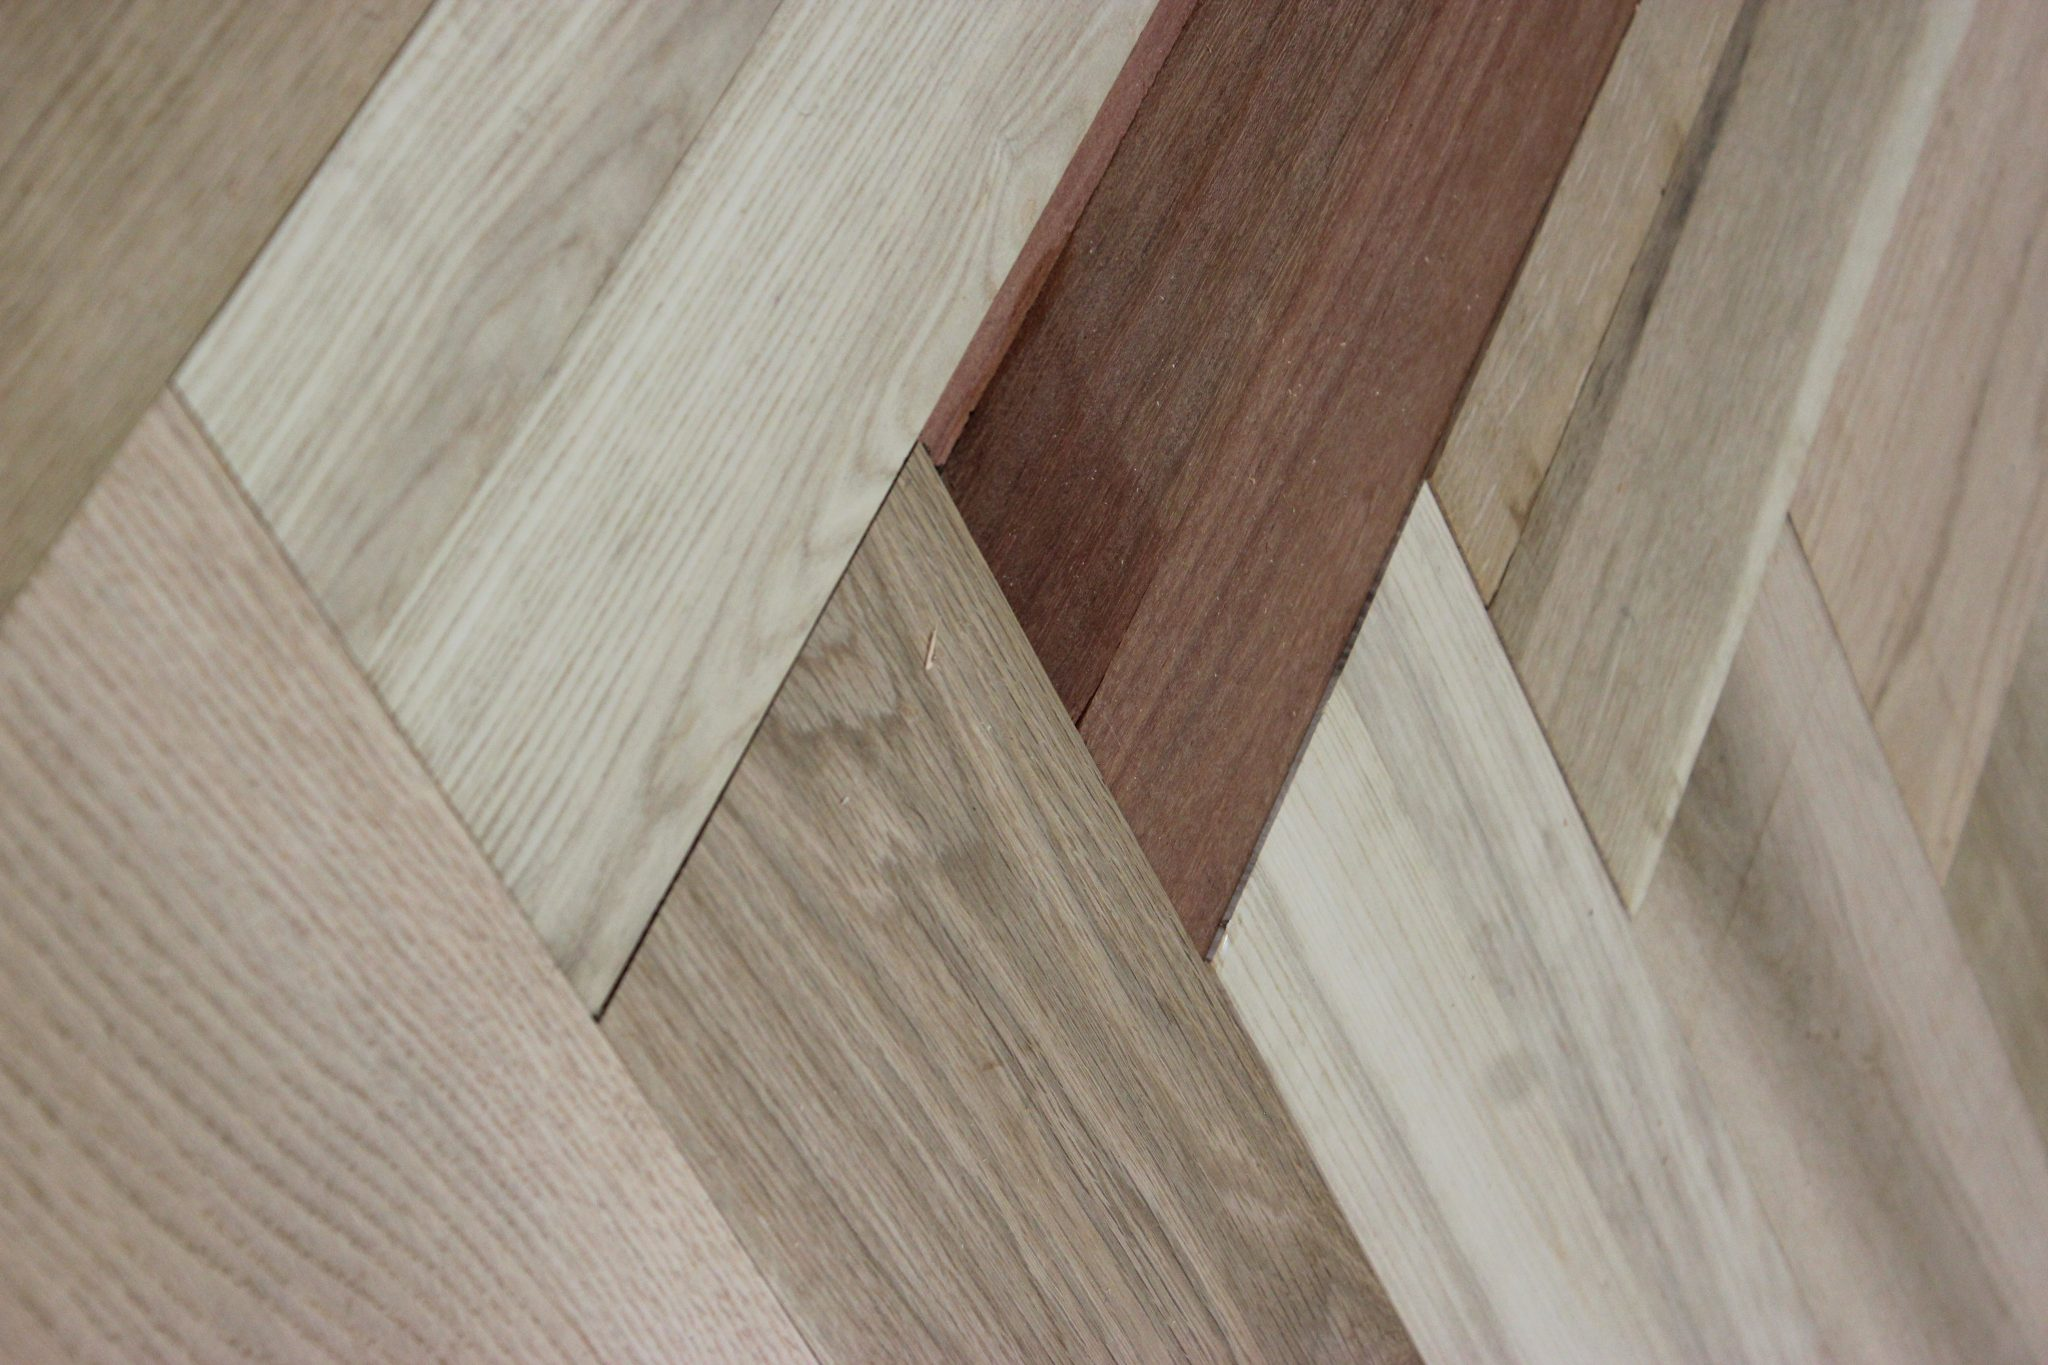 A close up of the herringbone pattern   Slaughterbeck floors